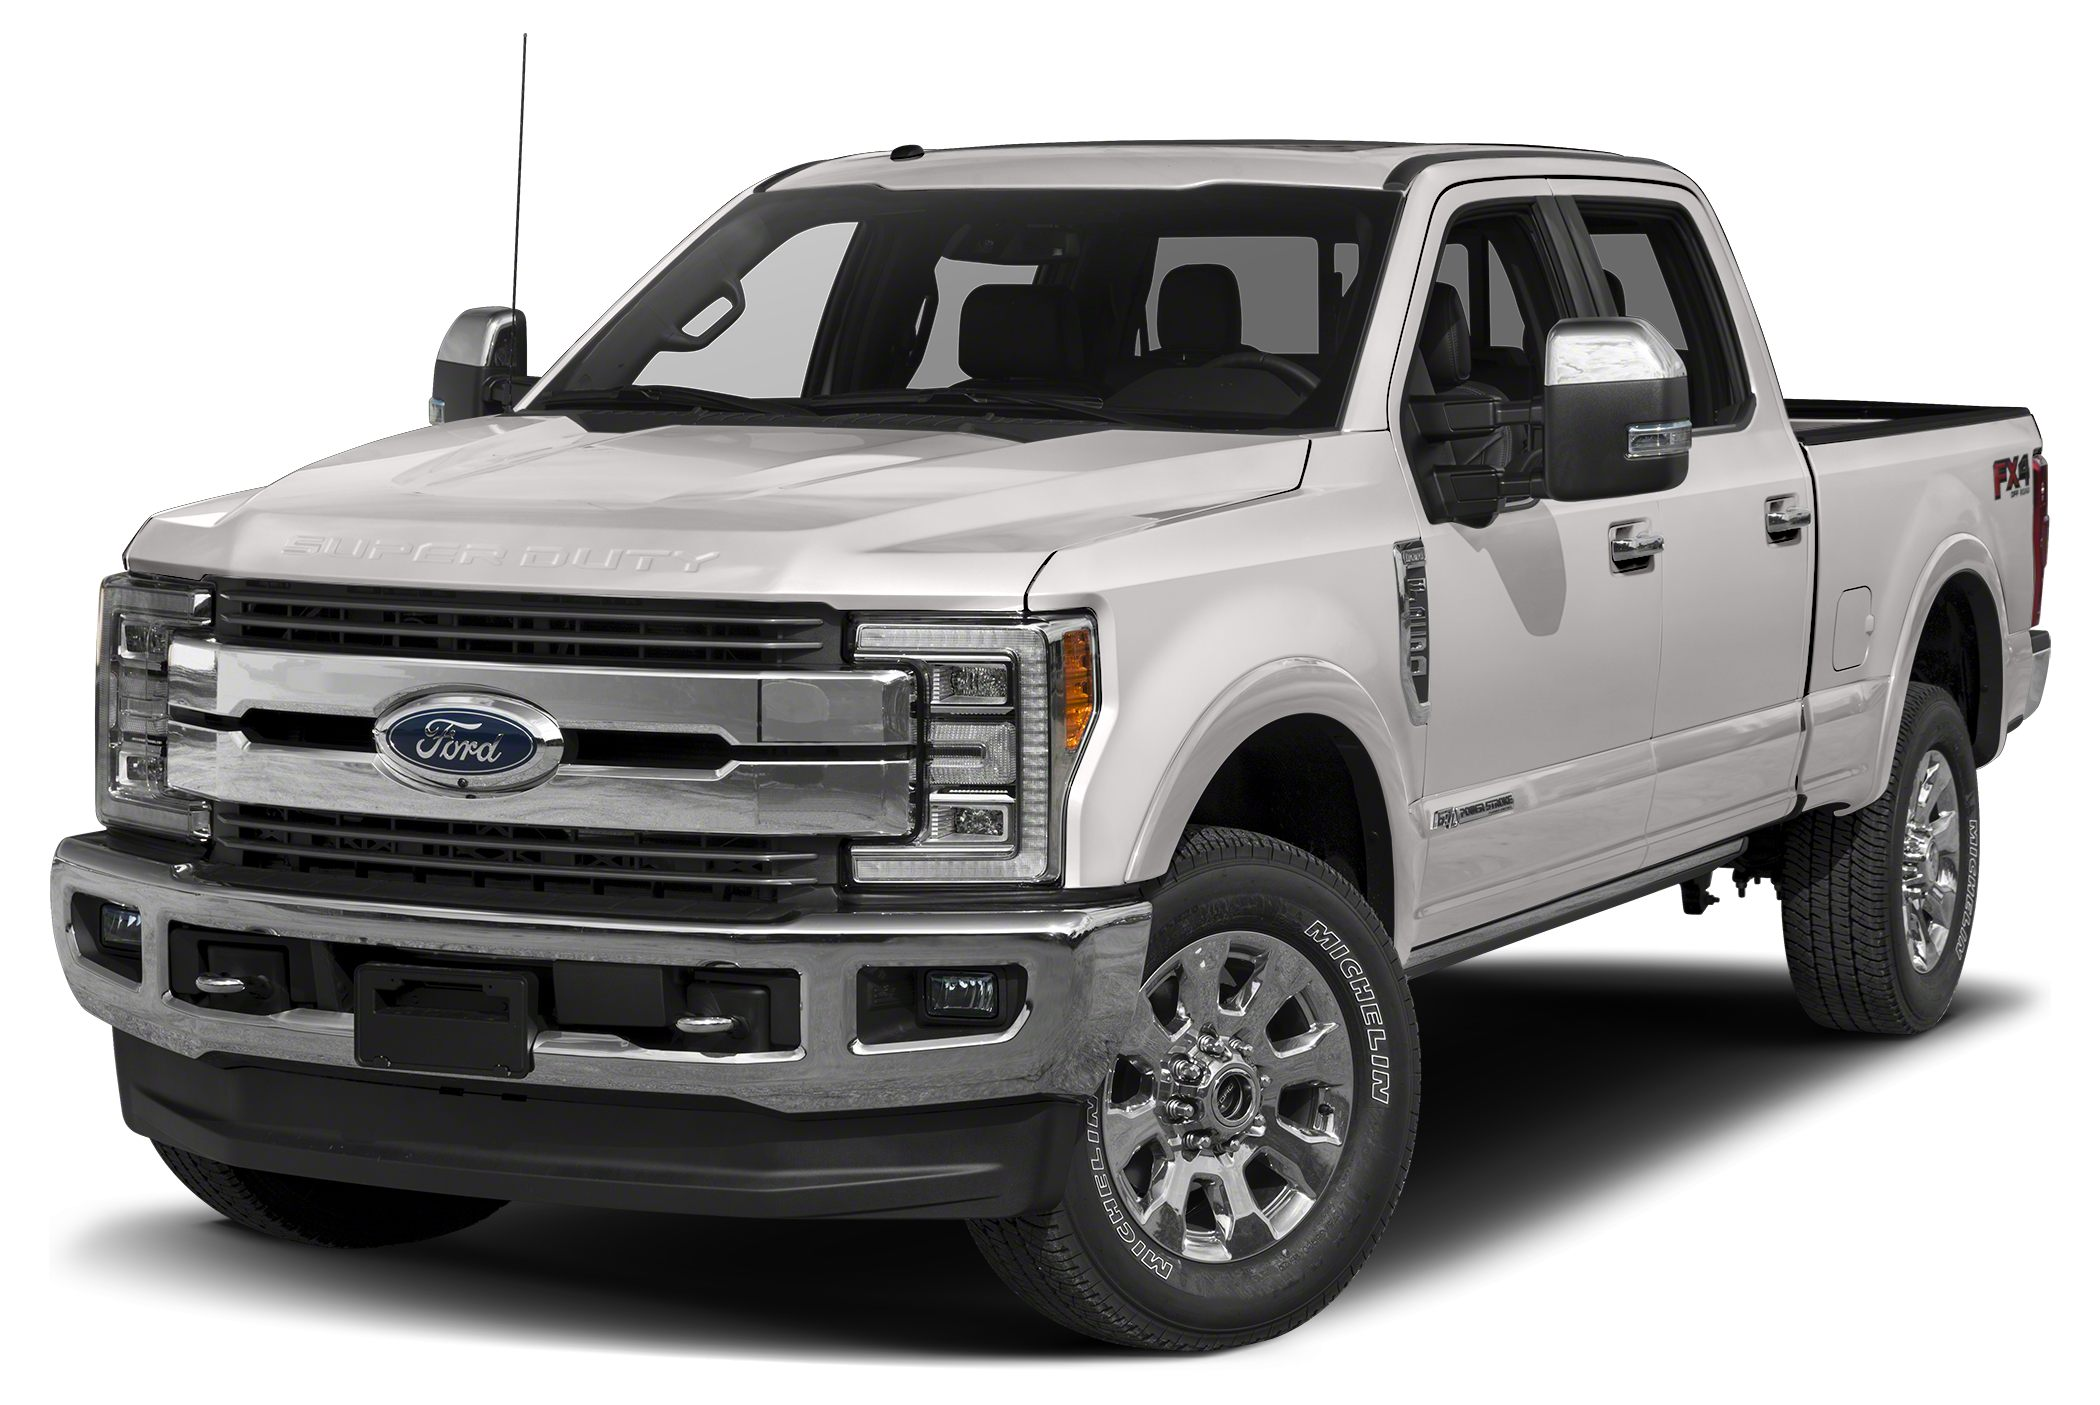 2017 Ford F-250 King Ranch Price includes 750 - Ford Credit Retail Bonus Customer Cash Exp 07